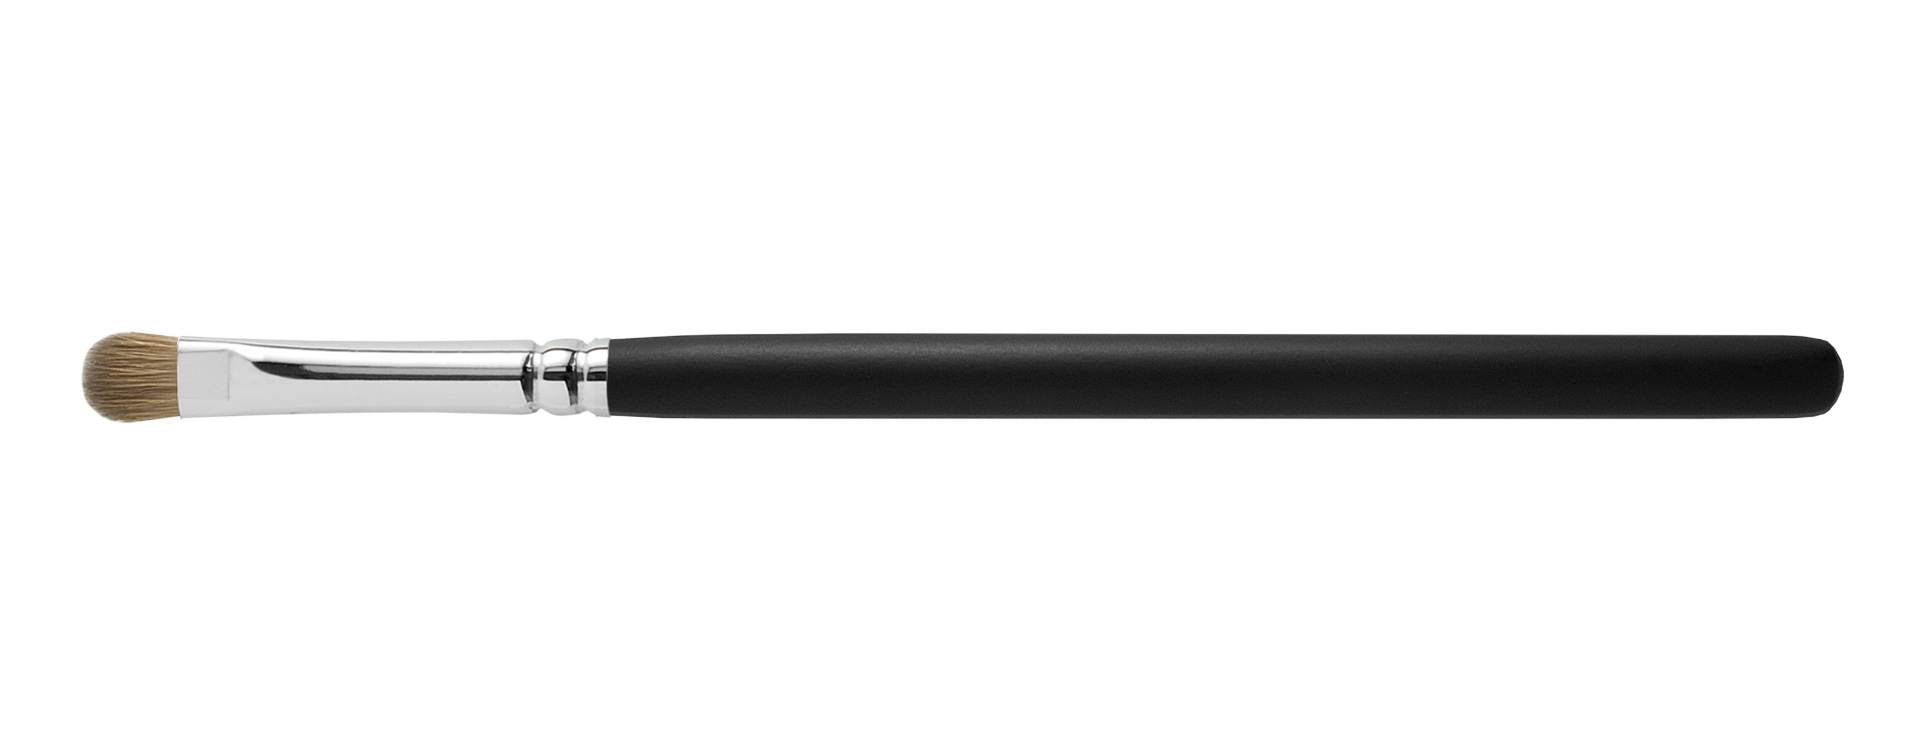 No. 6 DOMED SABLE EYE BRUSH